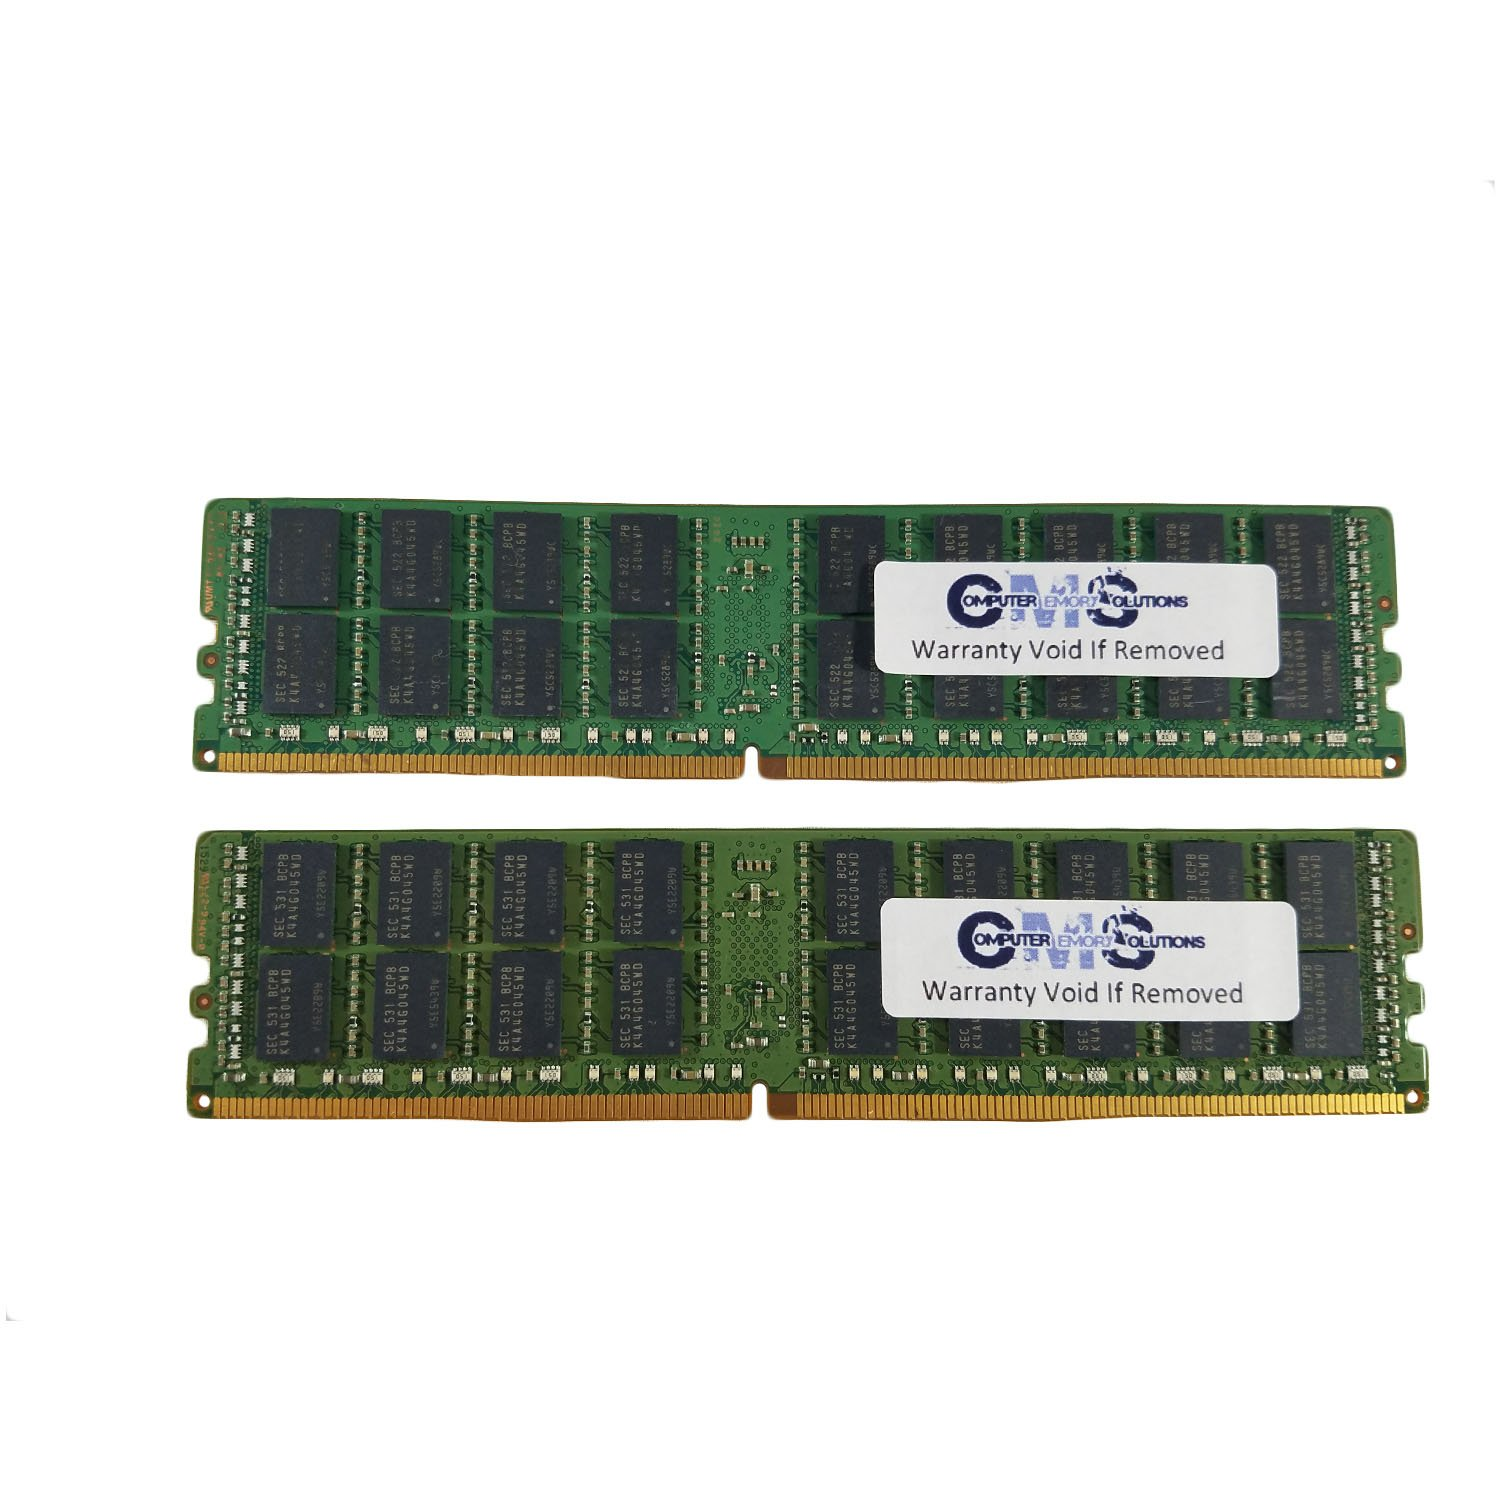 Axiom Memory Solution,lc 8gb Ddr3-1866 Ecc Rdimm Taa Compliant